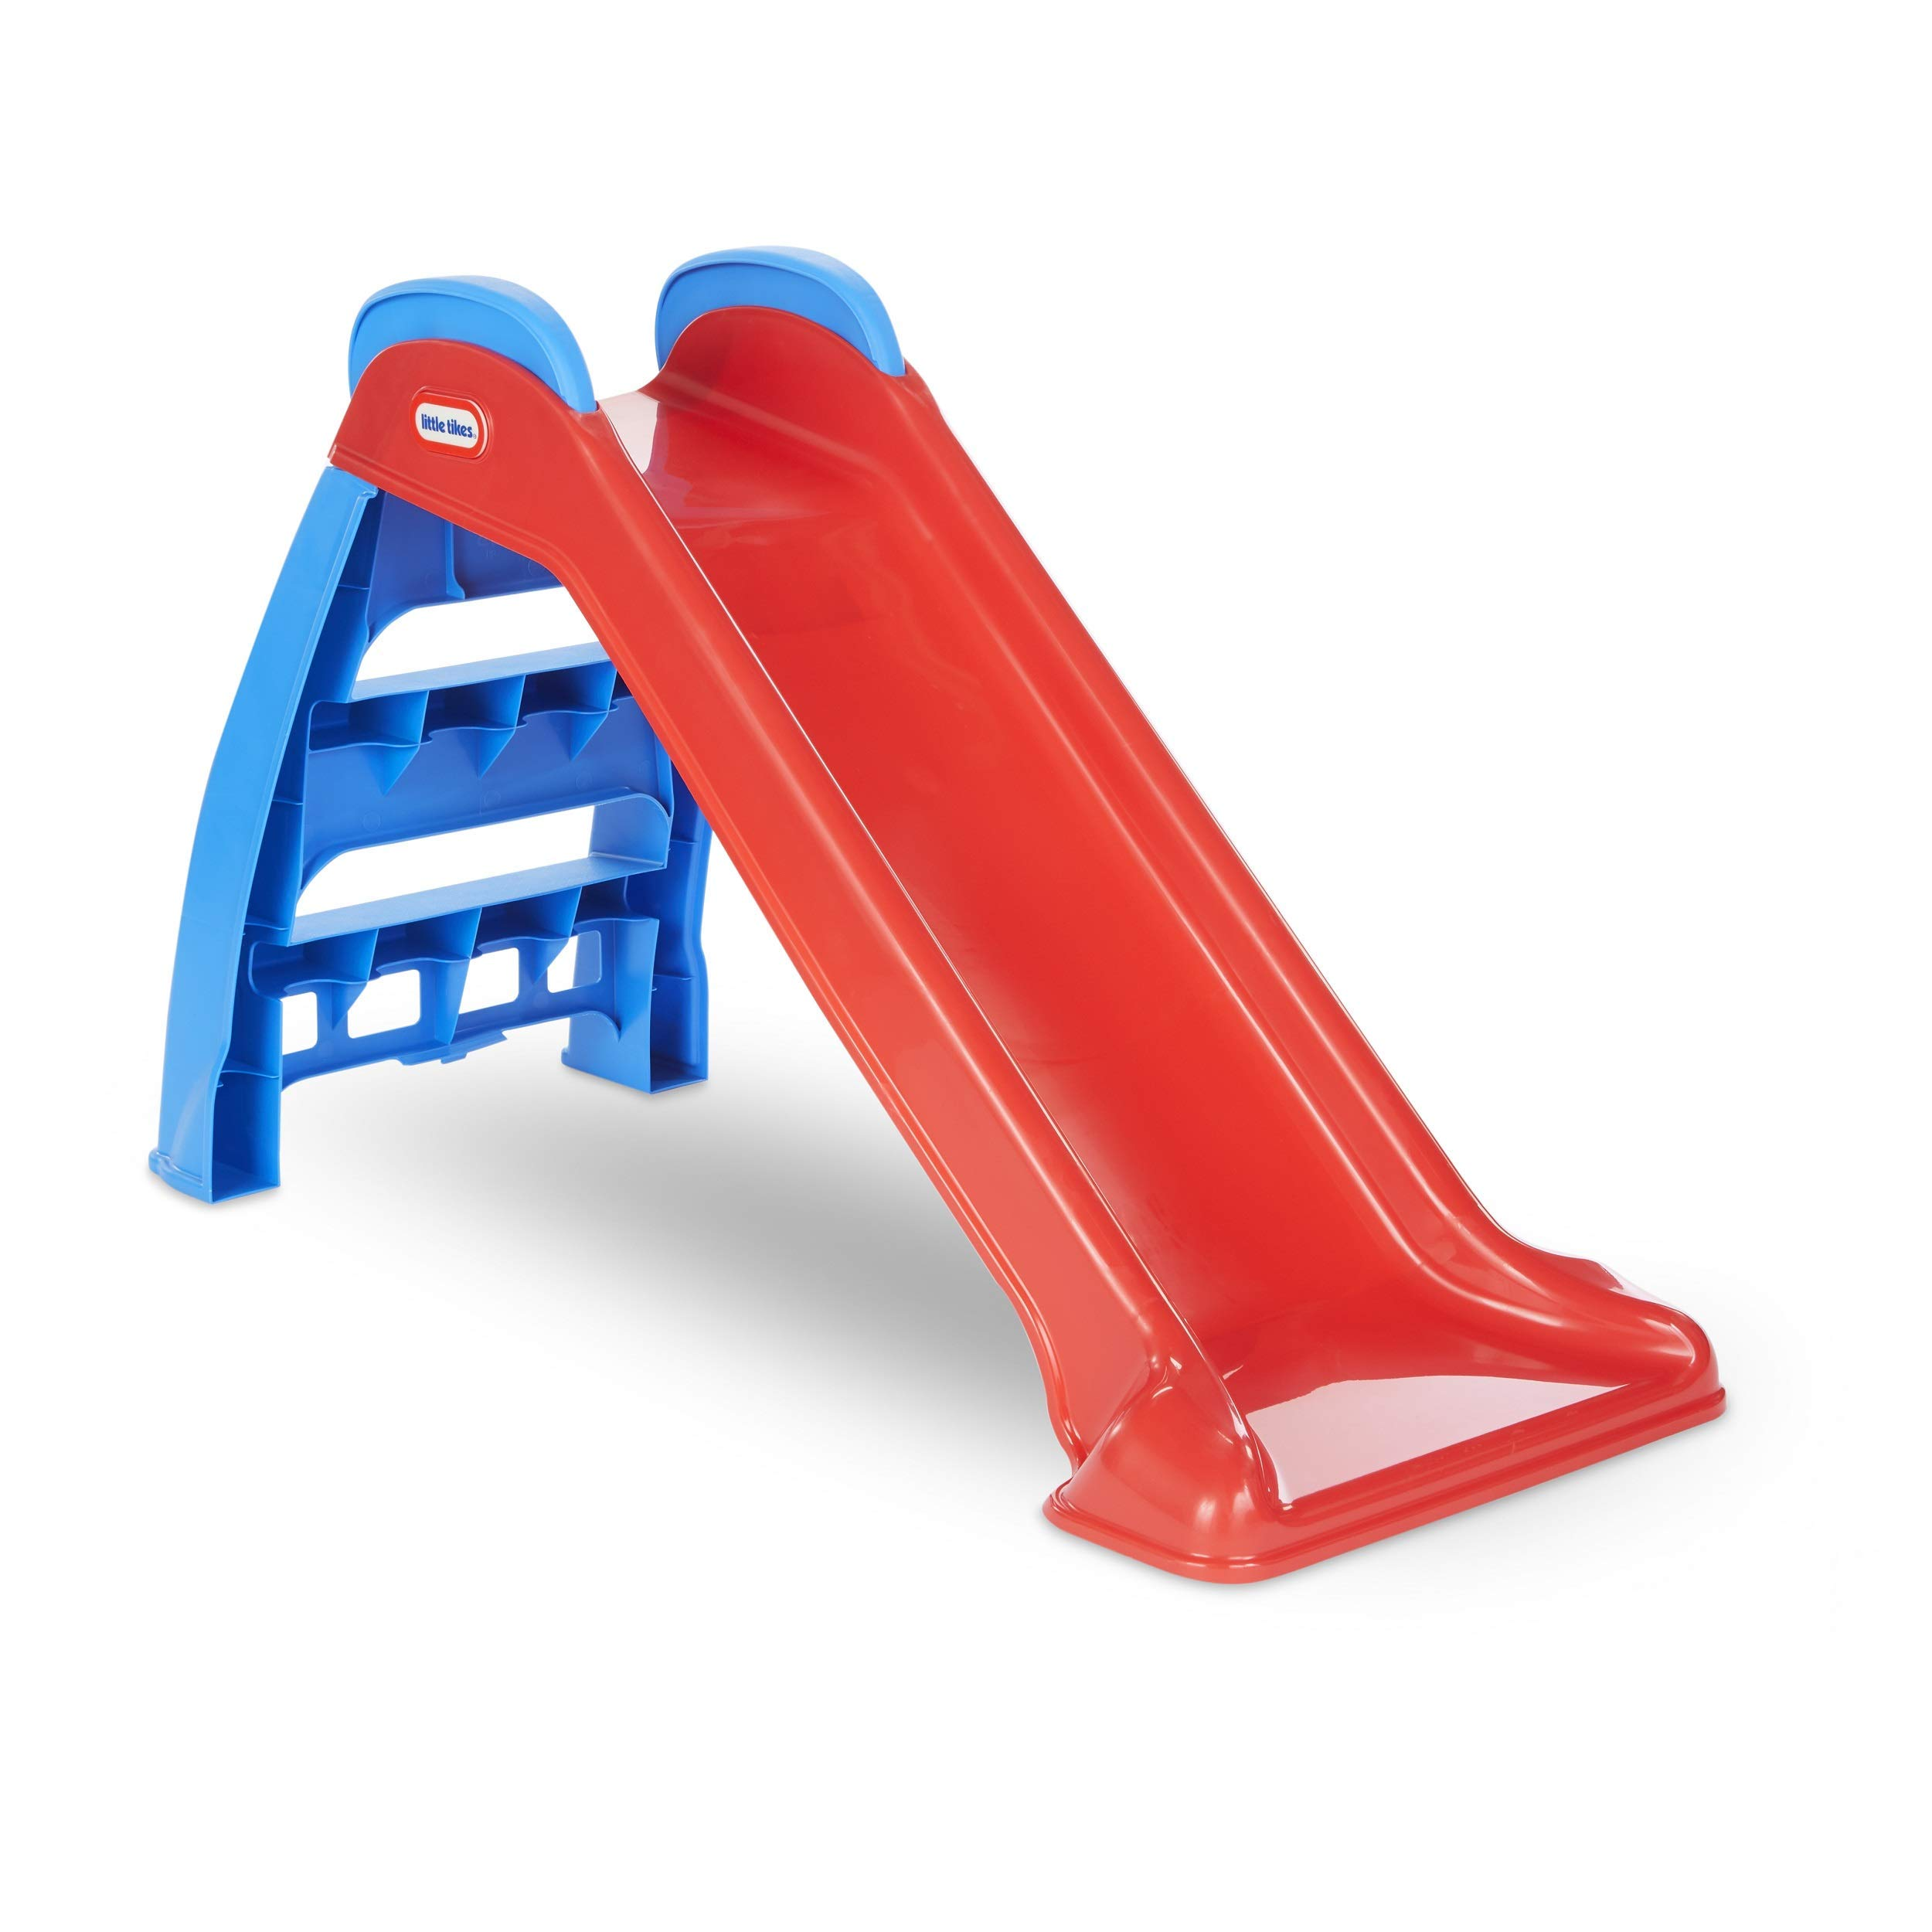 Little Tikes First Slide (Red/Blue) - Indoor / Outdoor Toddler Toy (Renewed) by Little Tikes